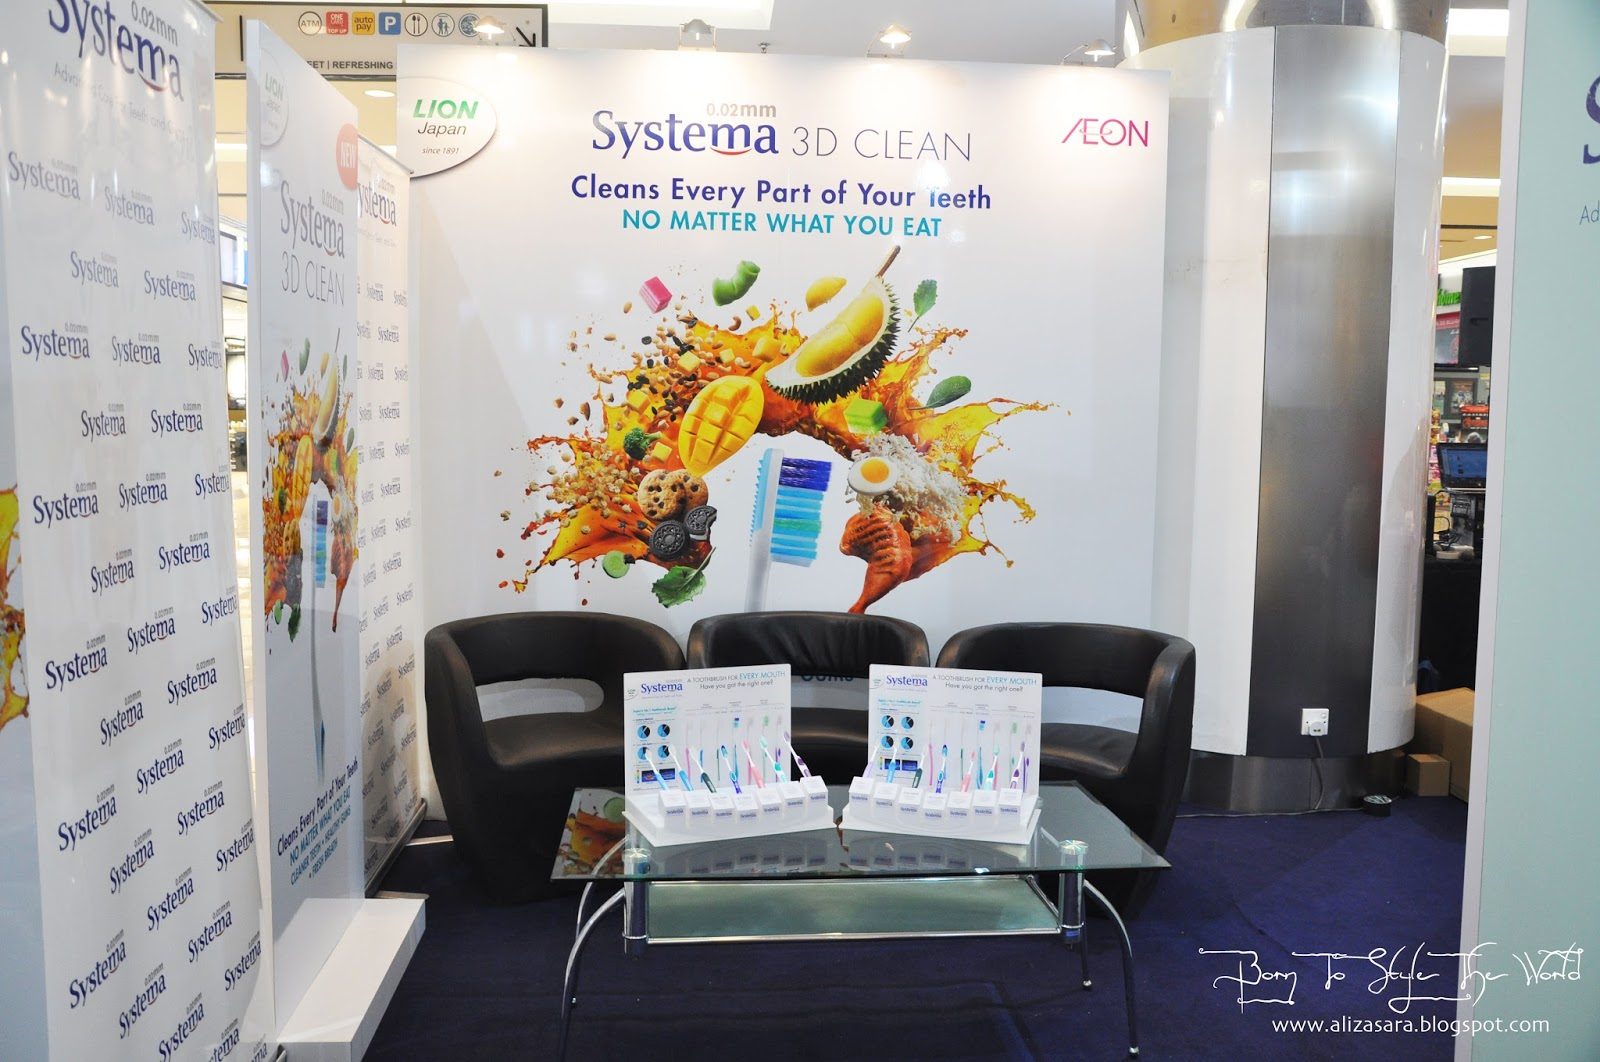 Sara Wanderlust New Systema 3d Clean Launch Toothbrush Power Regular The Event Space Of Campaign